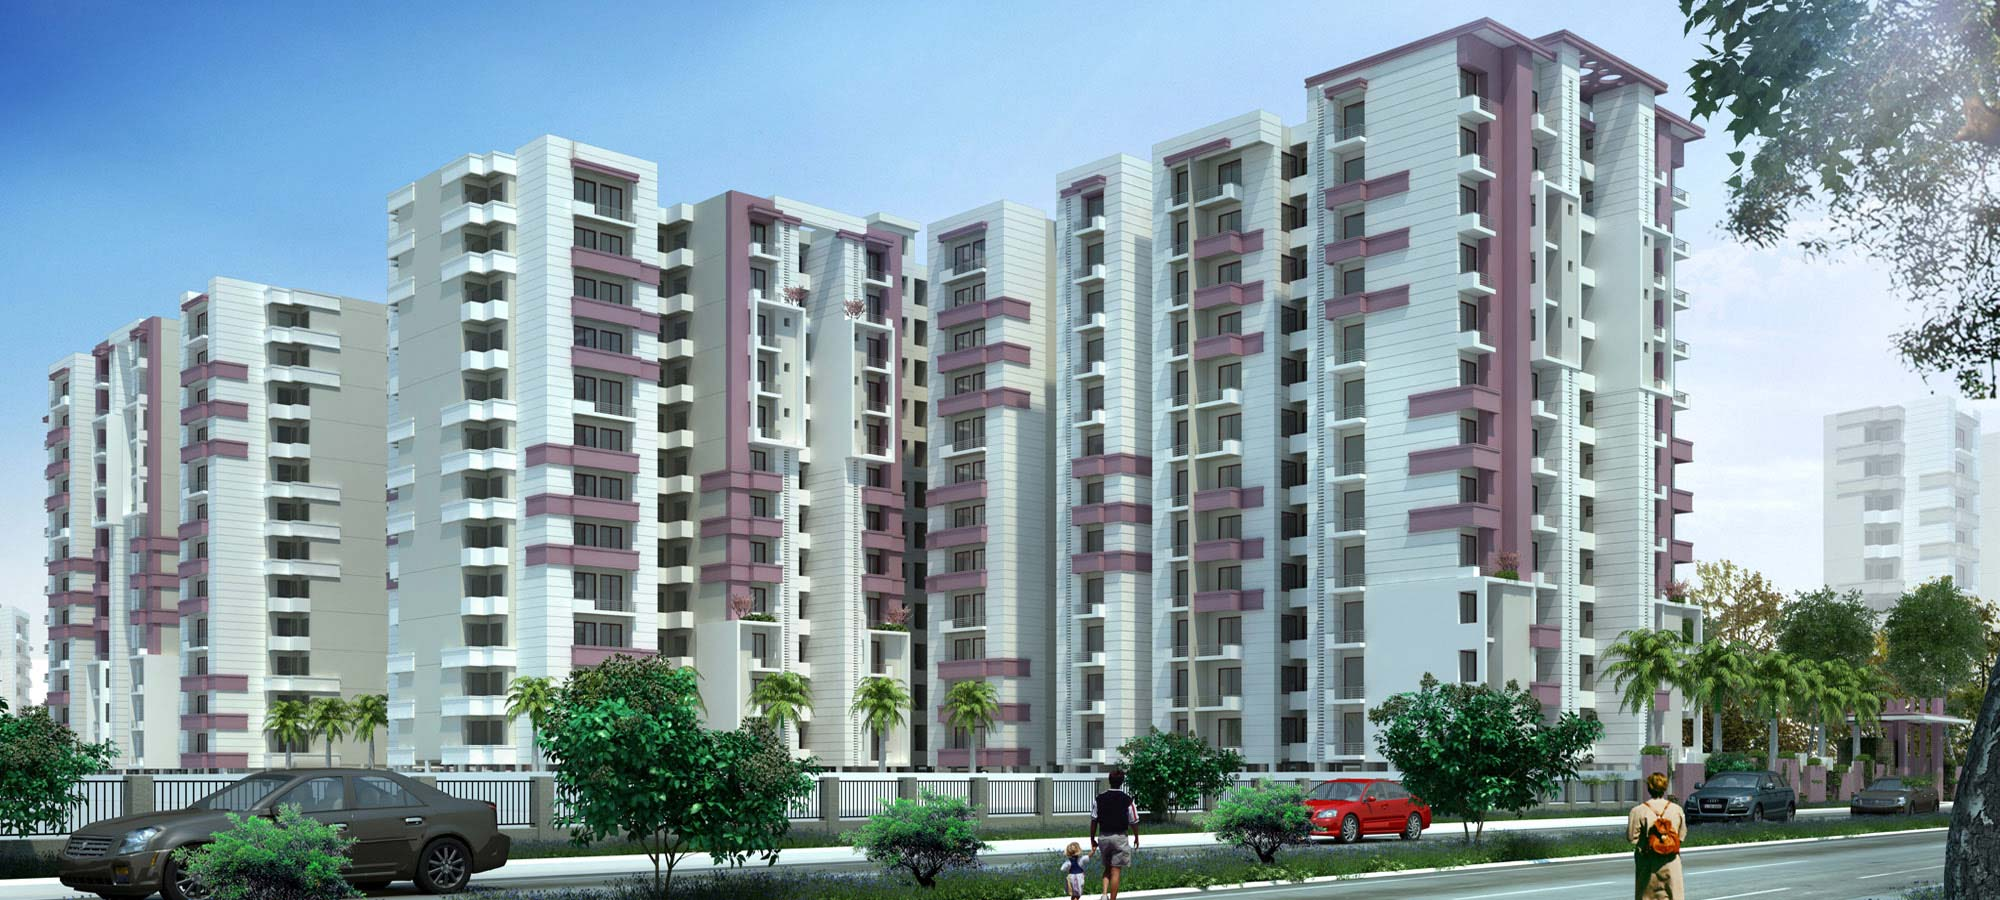 Azeagaia Development